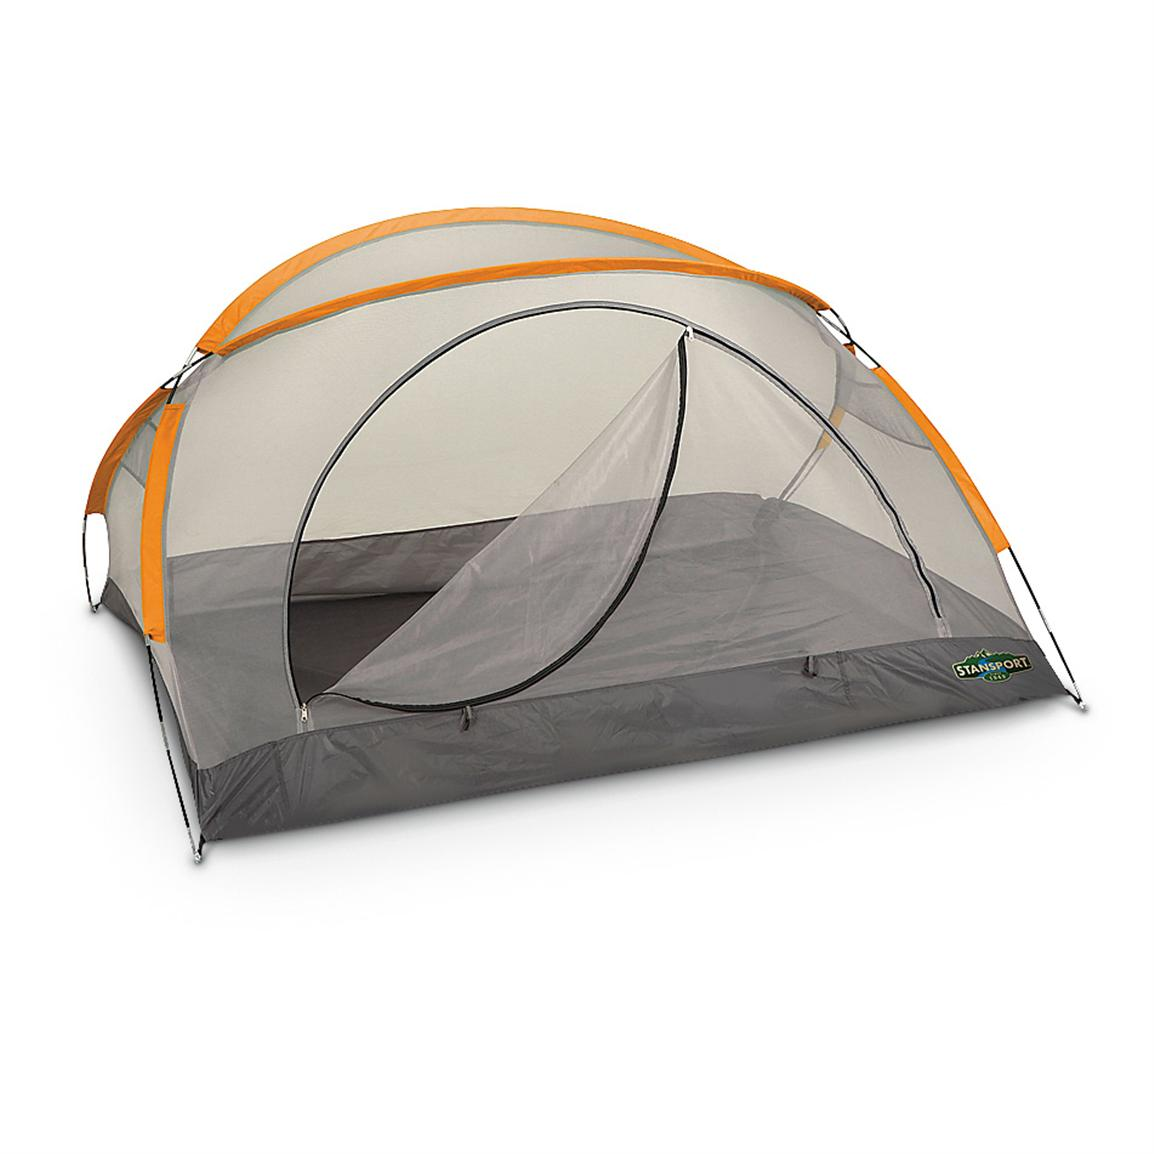 Stansport Starlite II Backpacking Tent, Without Rainfly